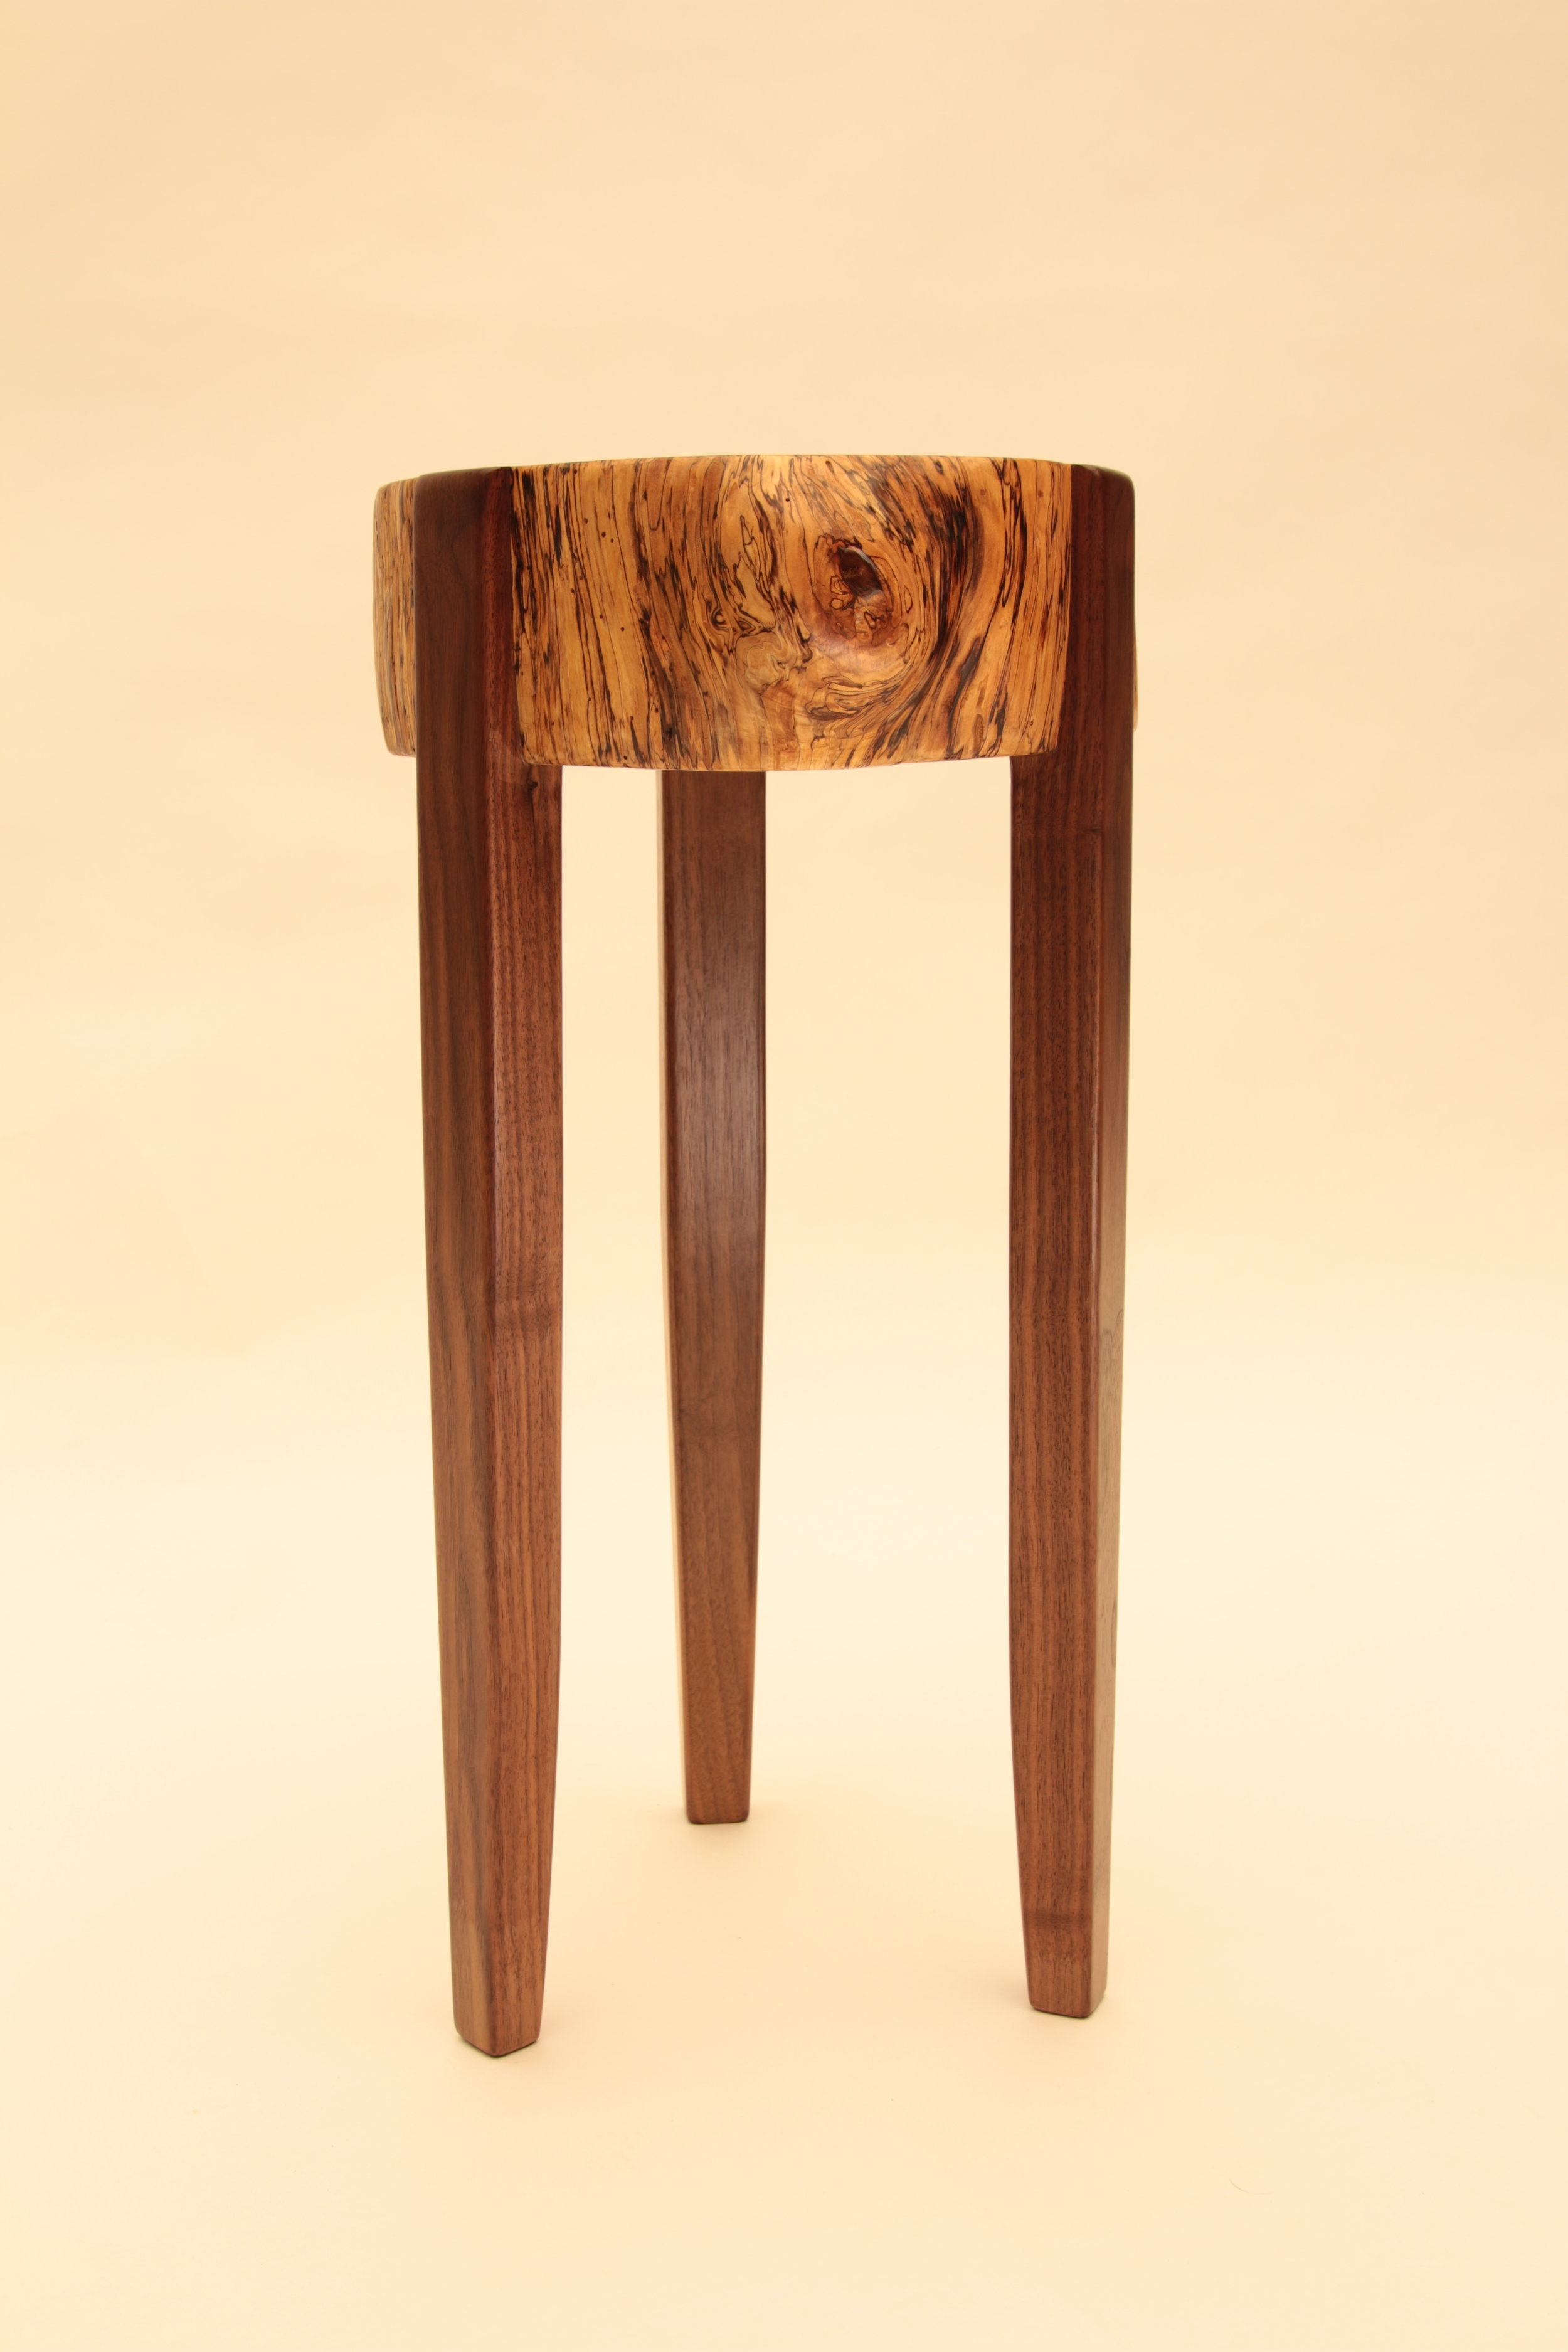 Tall Spalted Stump (side view)